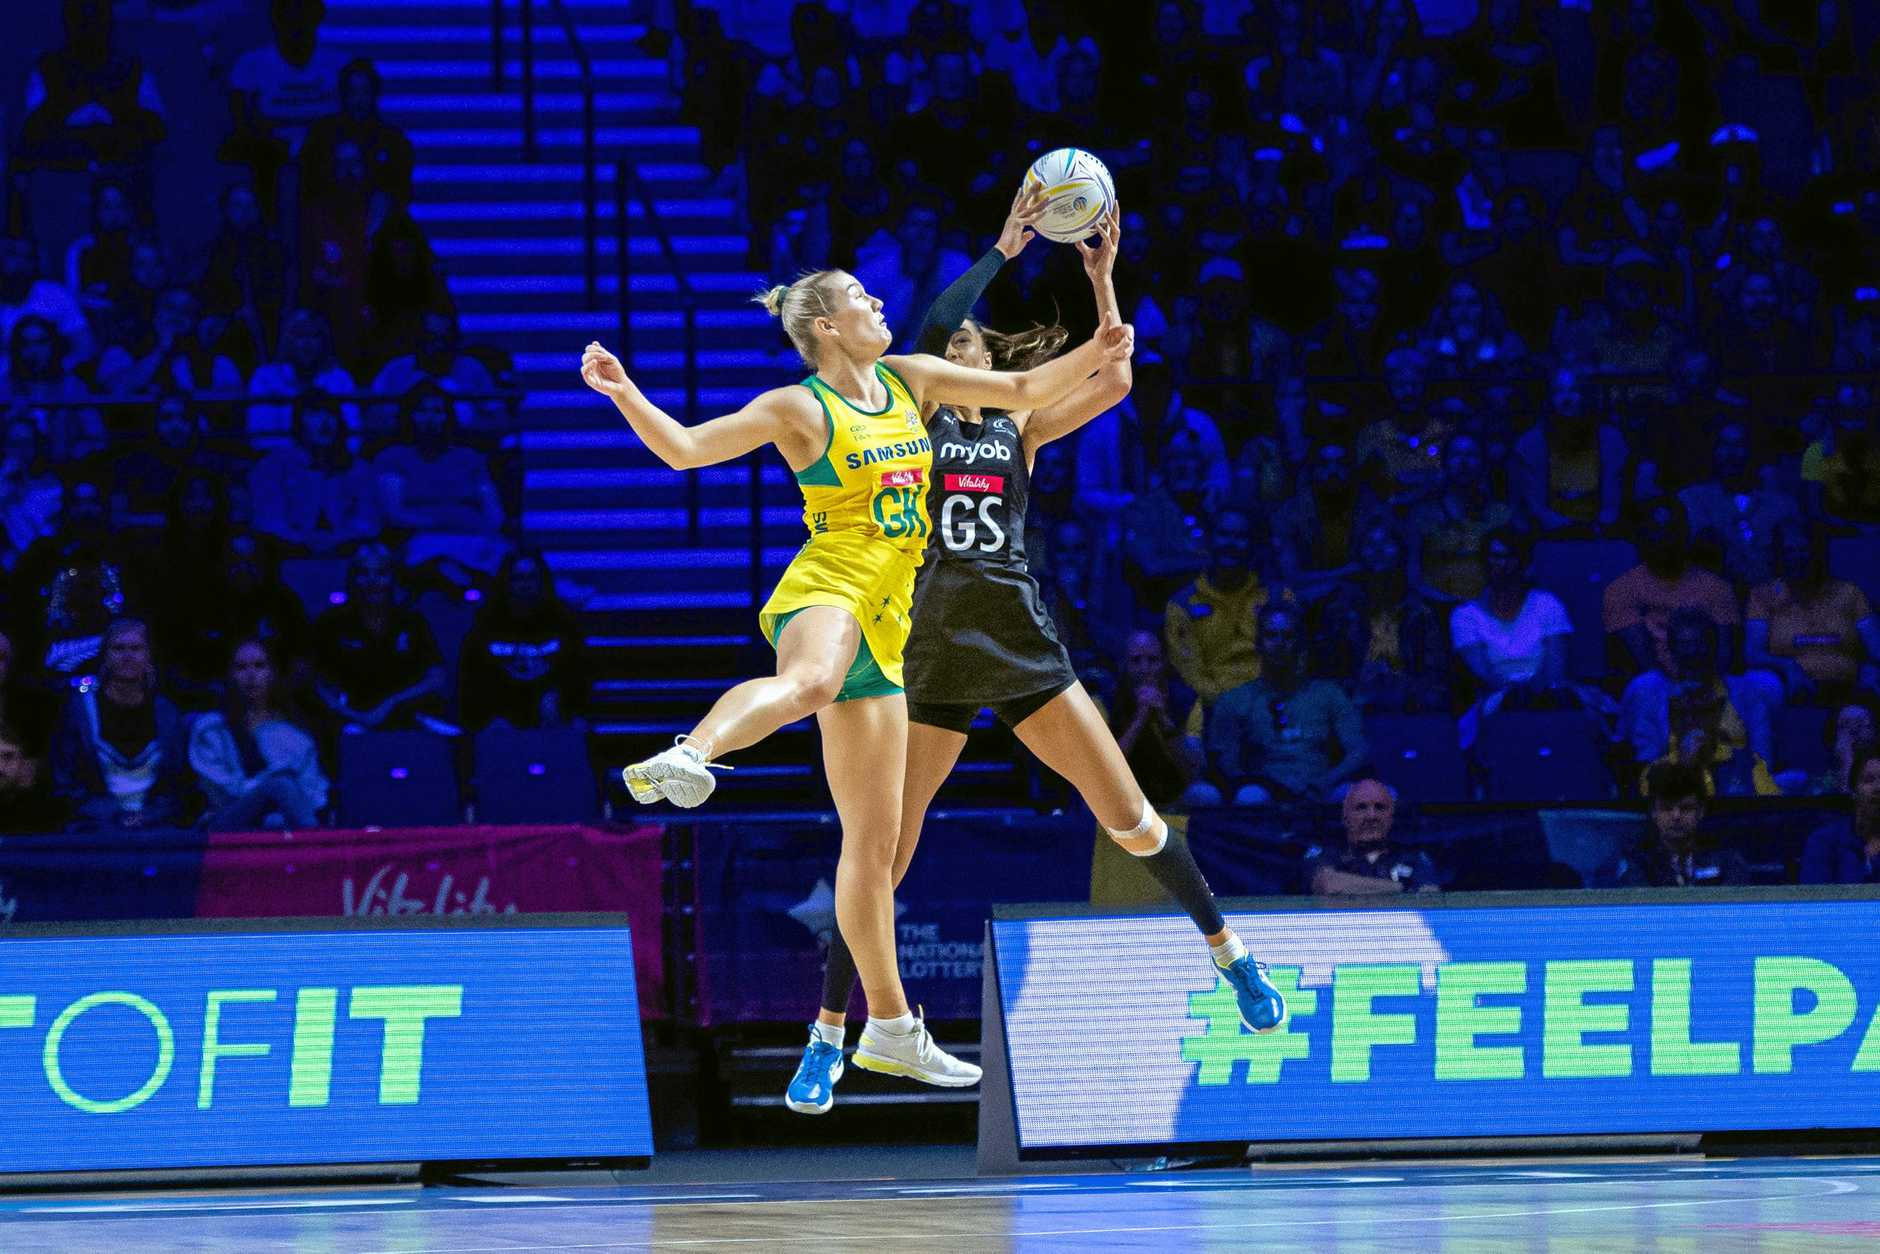 CUP: Courtney Bruce (L) of Australia and Bailey Mes (R) of New Zealand jump for the ball during the World Cup.